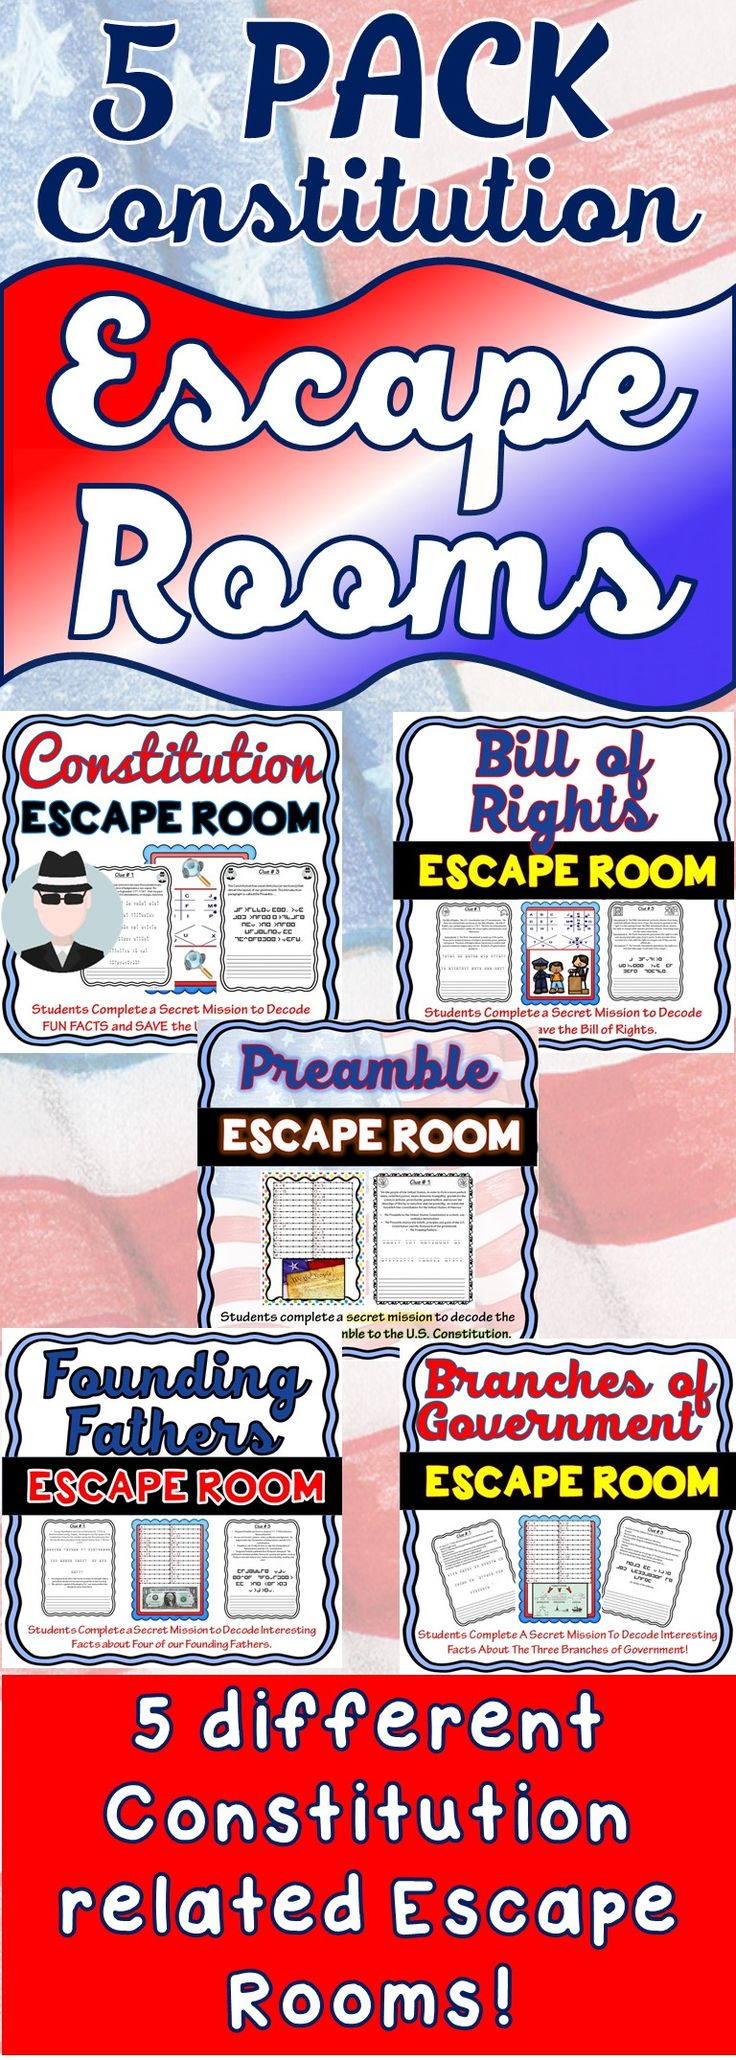 This 5 pack bundle of Constitution related Escape Rooms will take students on 5 separate secret missions around the classroom! Each escape room has students decode interesting facts about the Preamble, the Constitution, Bill of Rights, Founding Fathers or the Branches of Government. This is the perfect resource to introduce the subject or to review the topics.